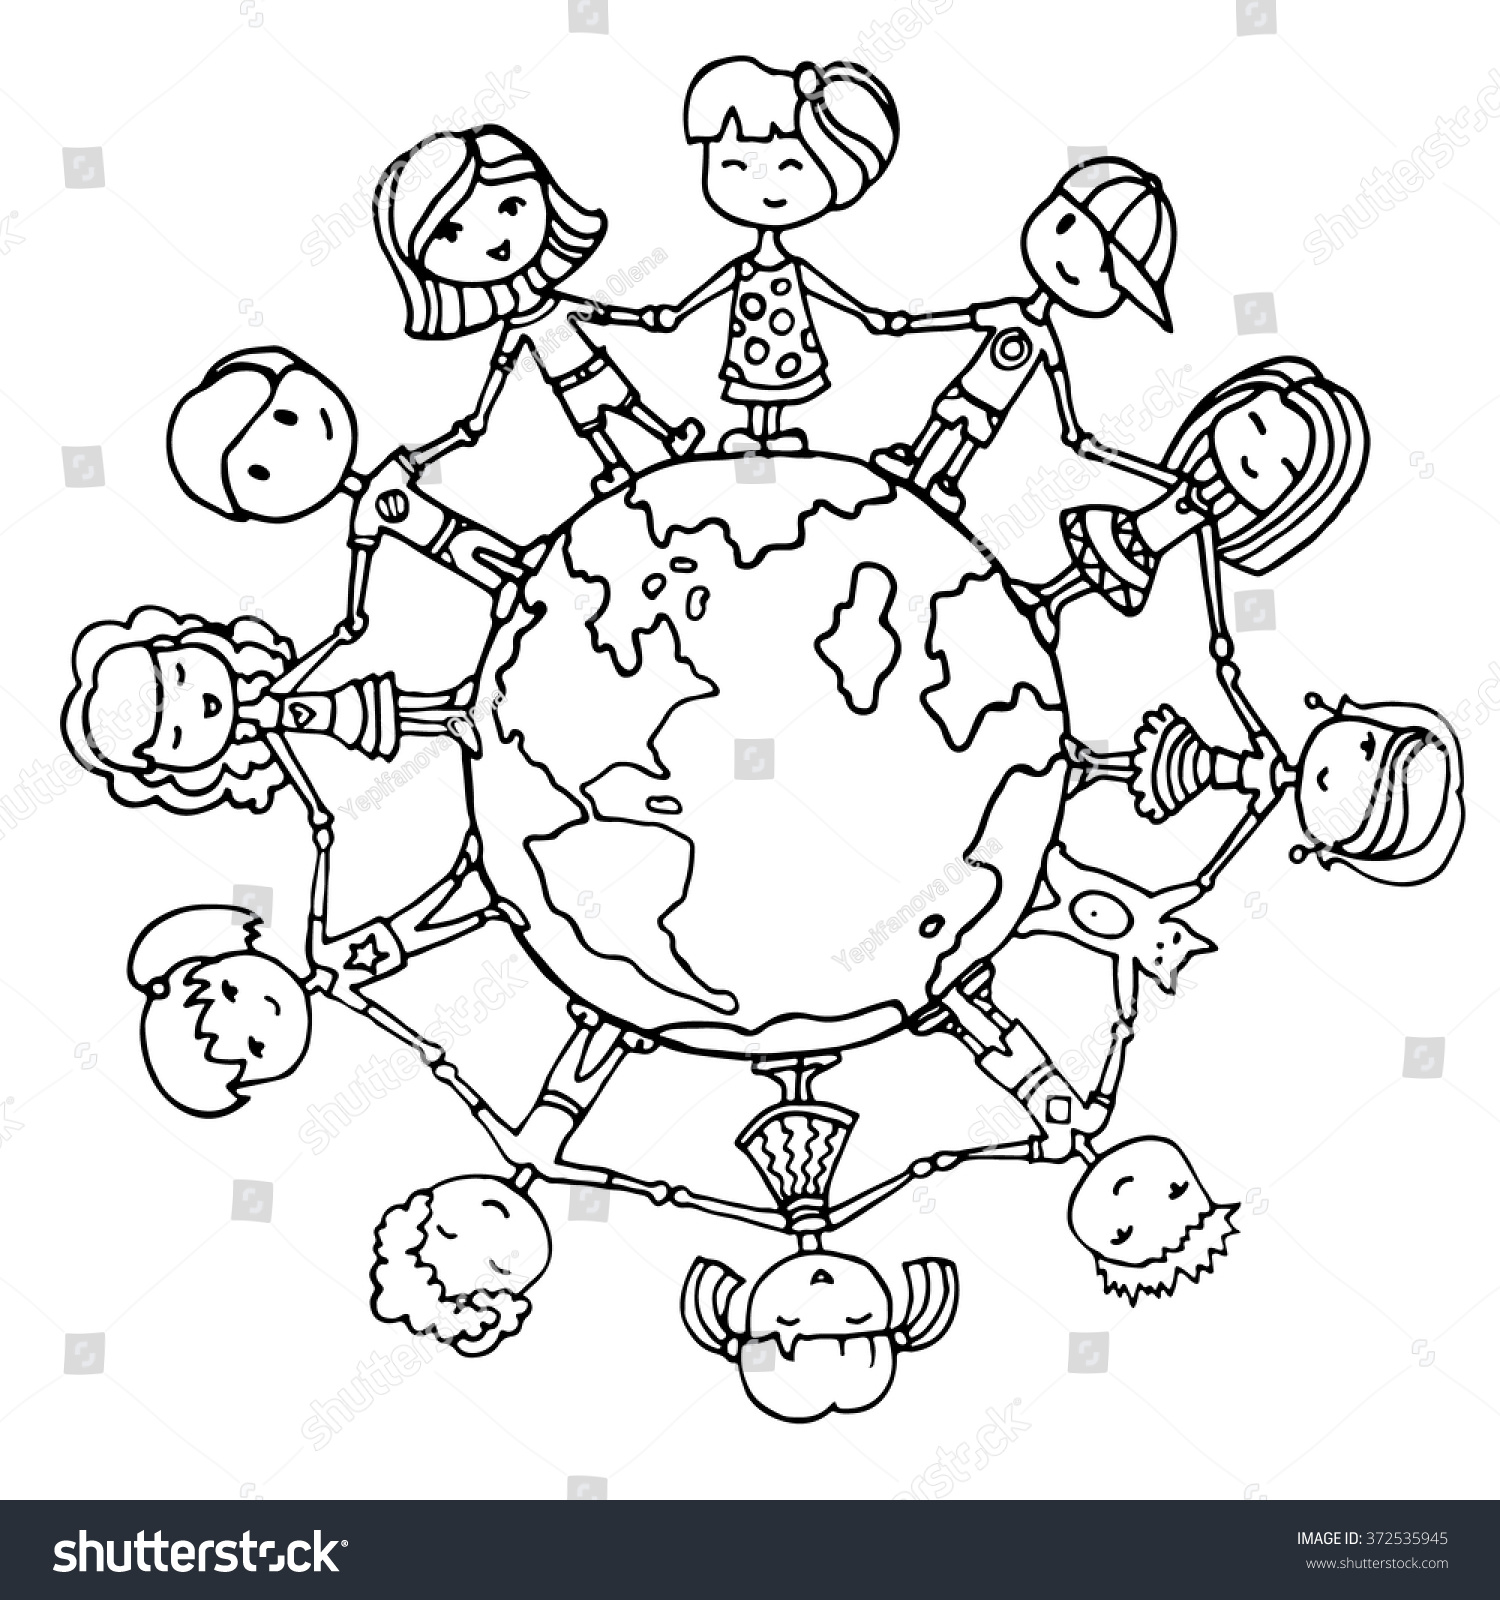 Children Of The World Clipart Black And White.